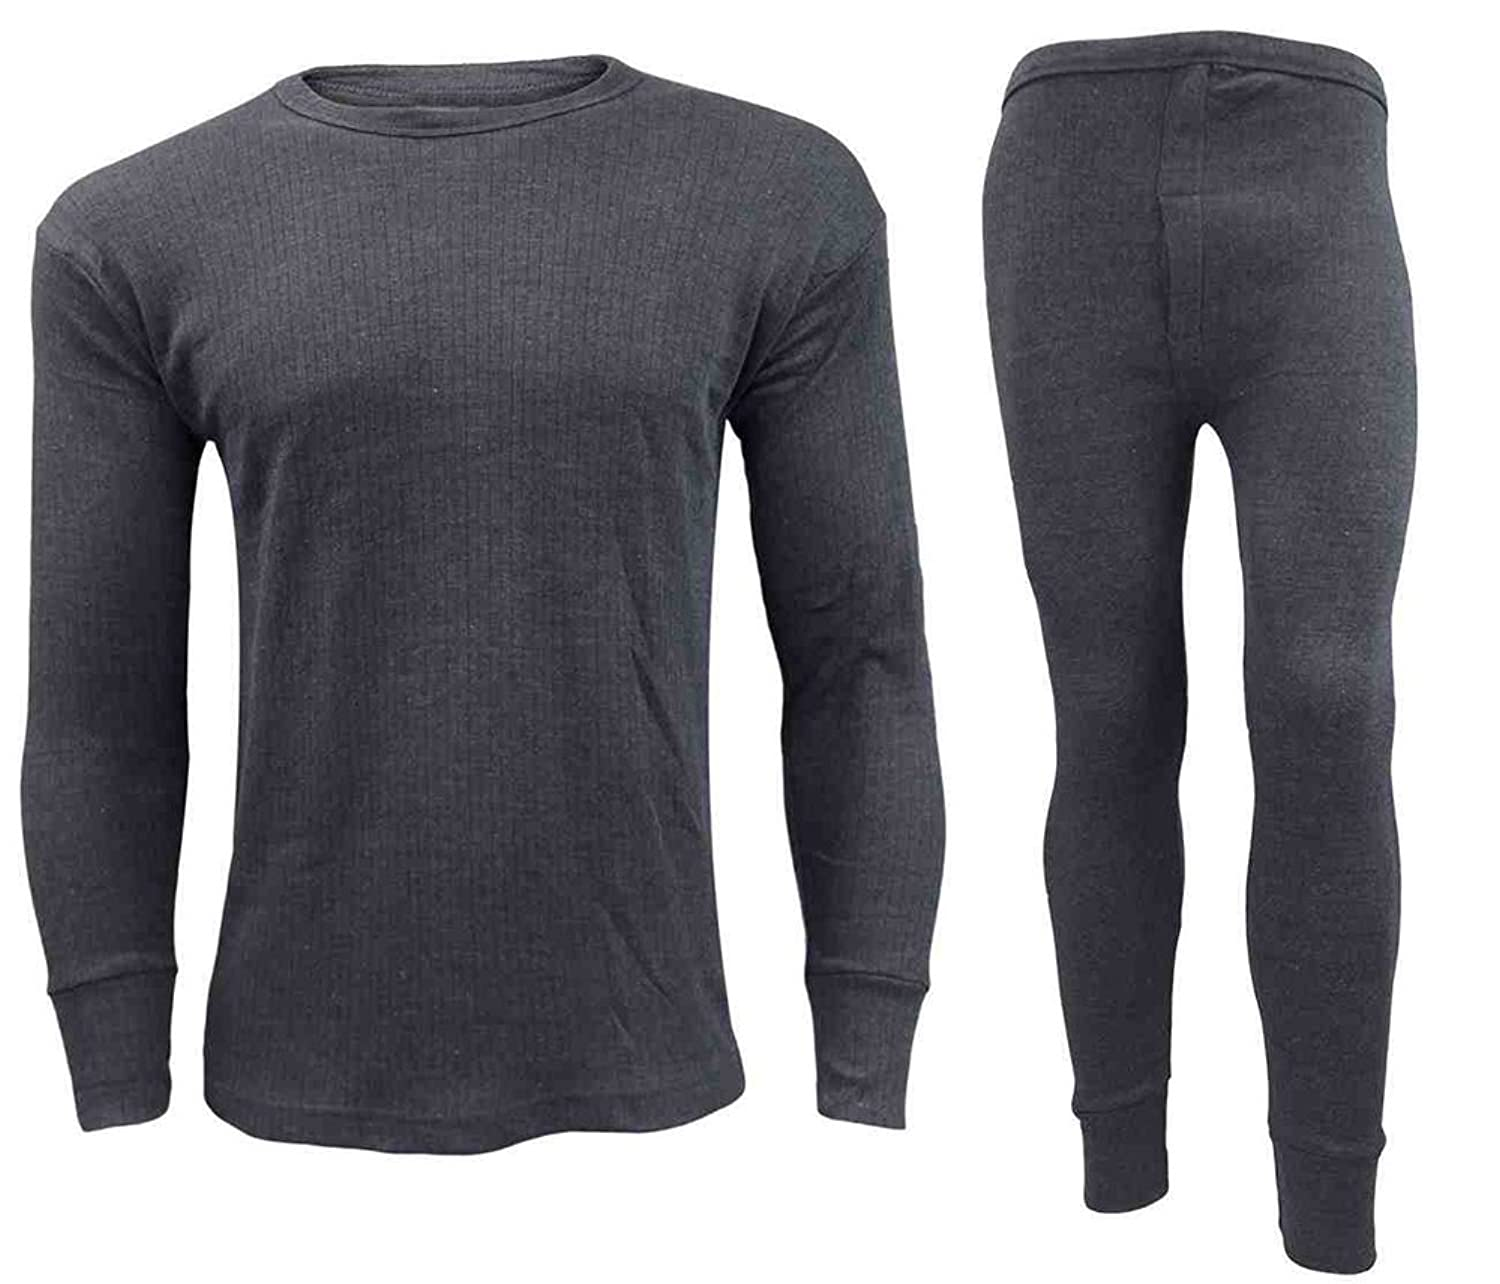 Herren Thermo-Unterwäsche Long John Weste Lange Ärmel Top Ski Warm Winter T Shirt